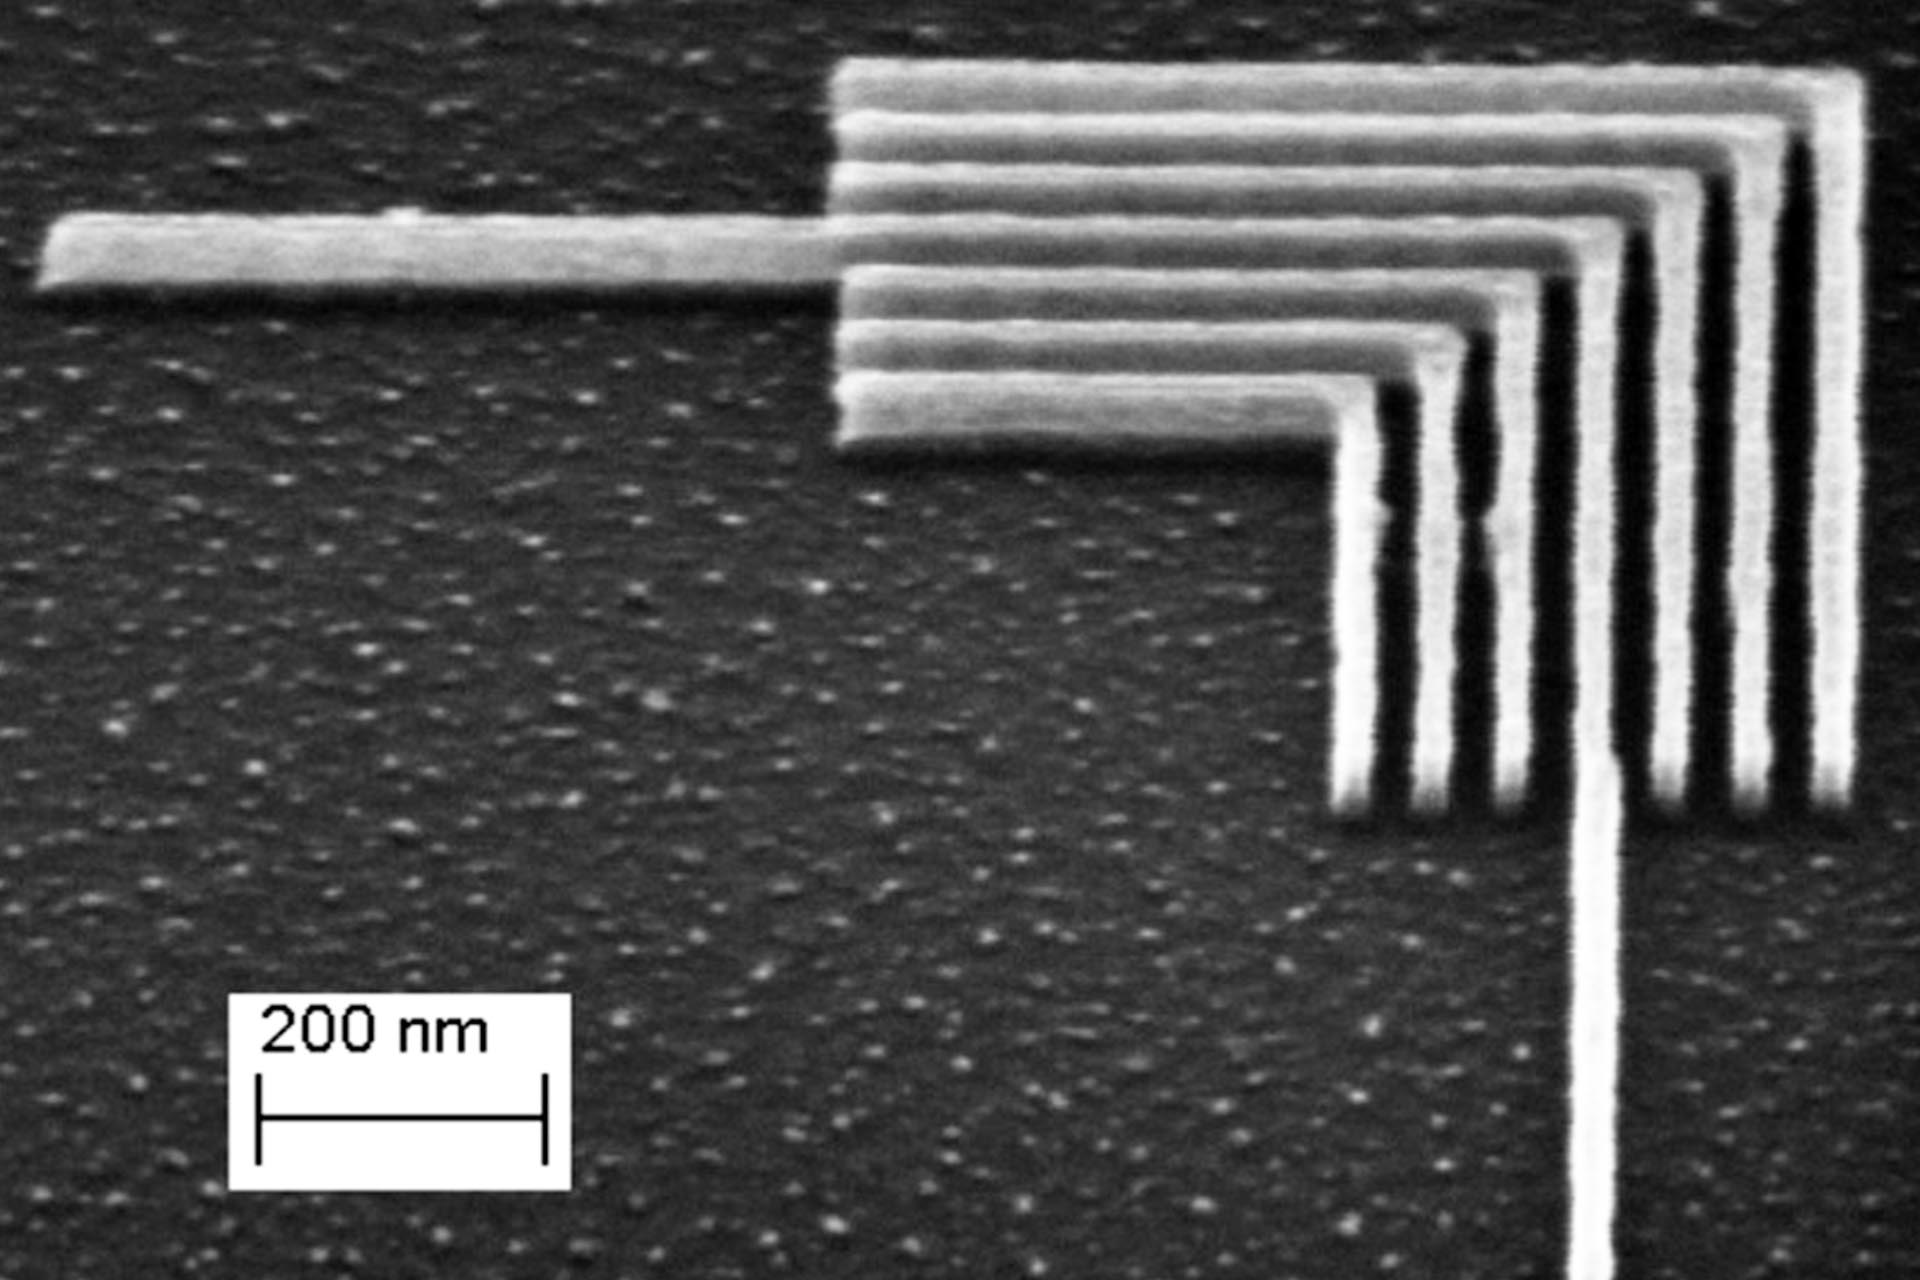 A tilted SEM image of nested L-structures etched into silicon (Courtesy of IBM Research Zurich & Heidelberg Instruments Nano)